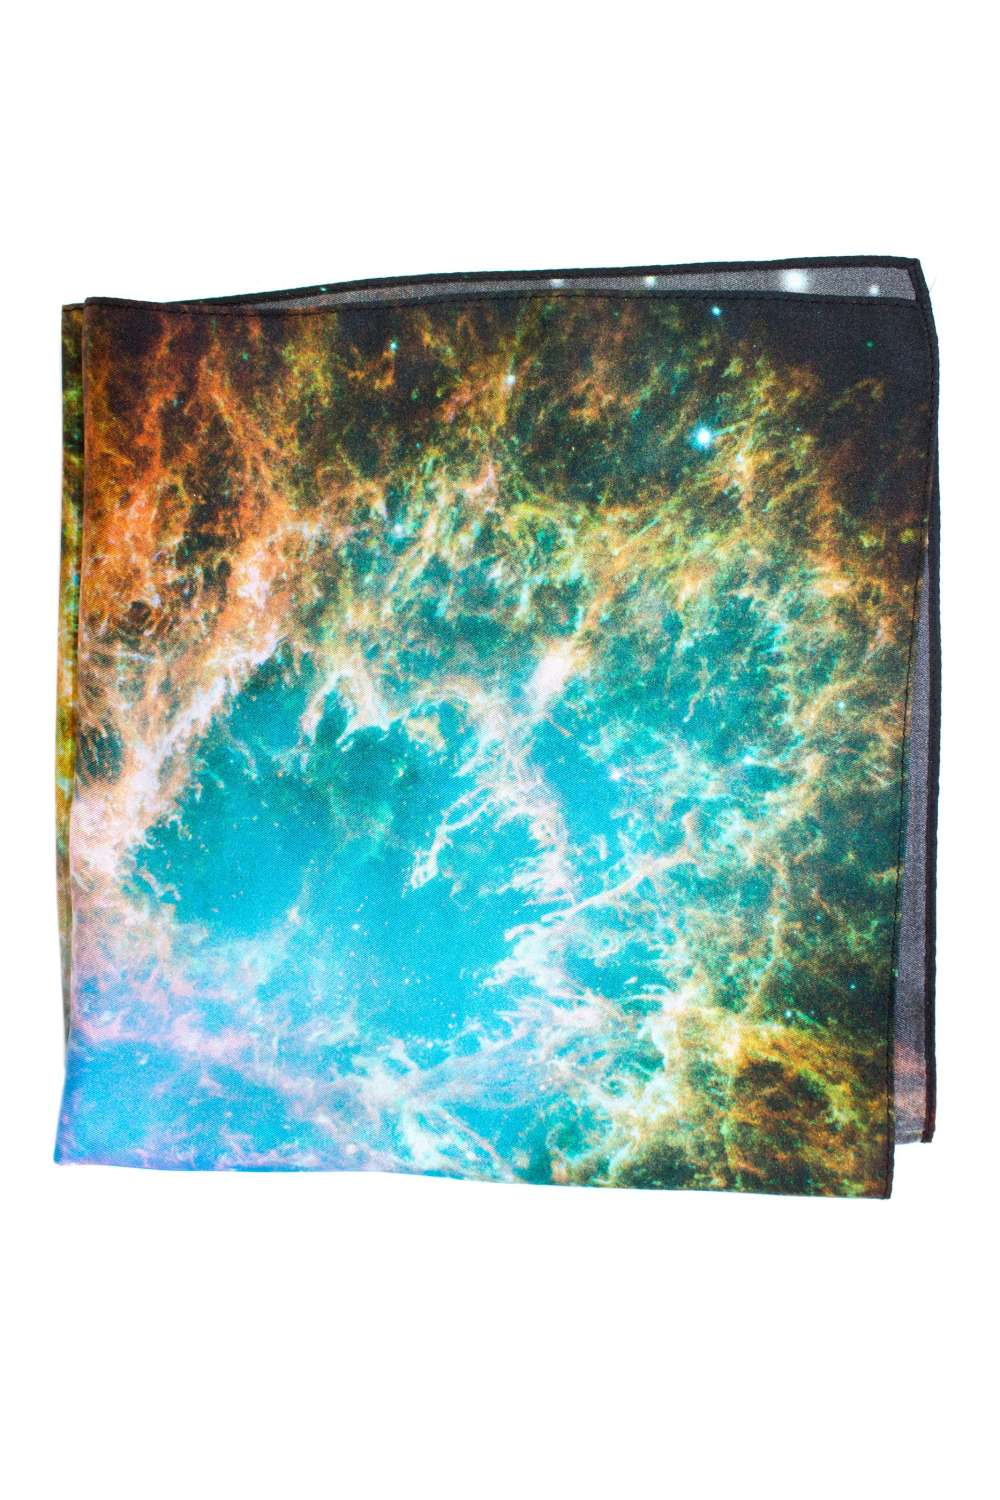 content-1511370891-crab-nebula-pocket-sq